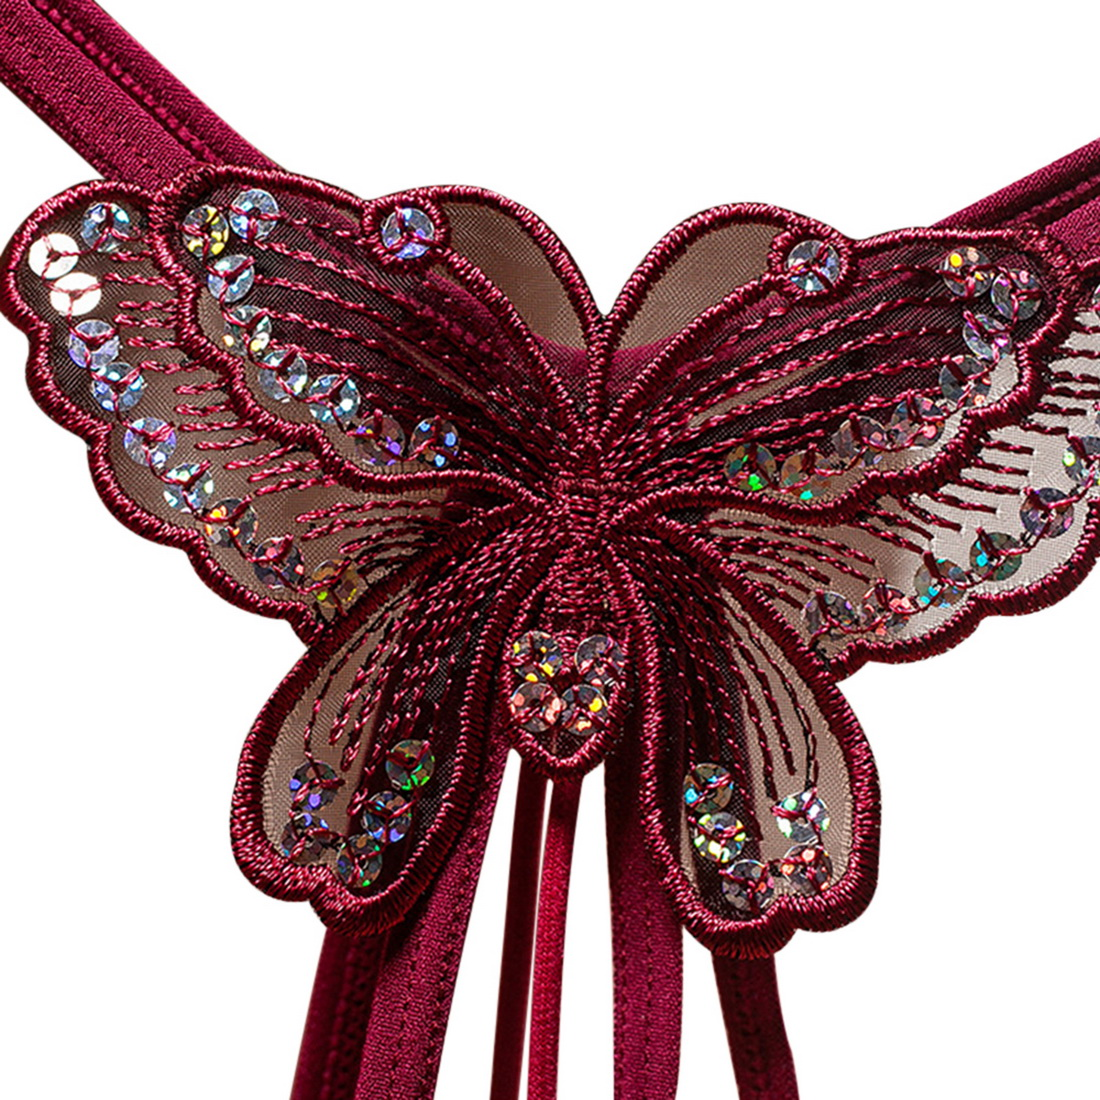 Hc964753343334946aa8961fa6e13db31f Oeak 2021 New Sequins Embroidery Butterfly Pearl Panties Sexy Lingerie Sex Thongs Women's Erotic Open Crotch Underwear